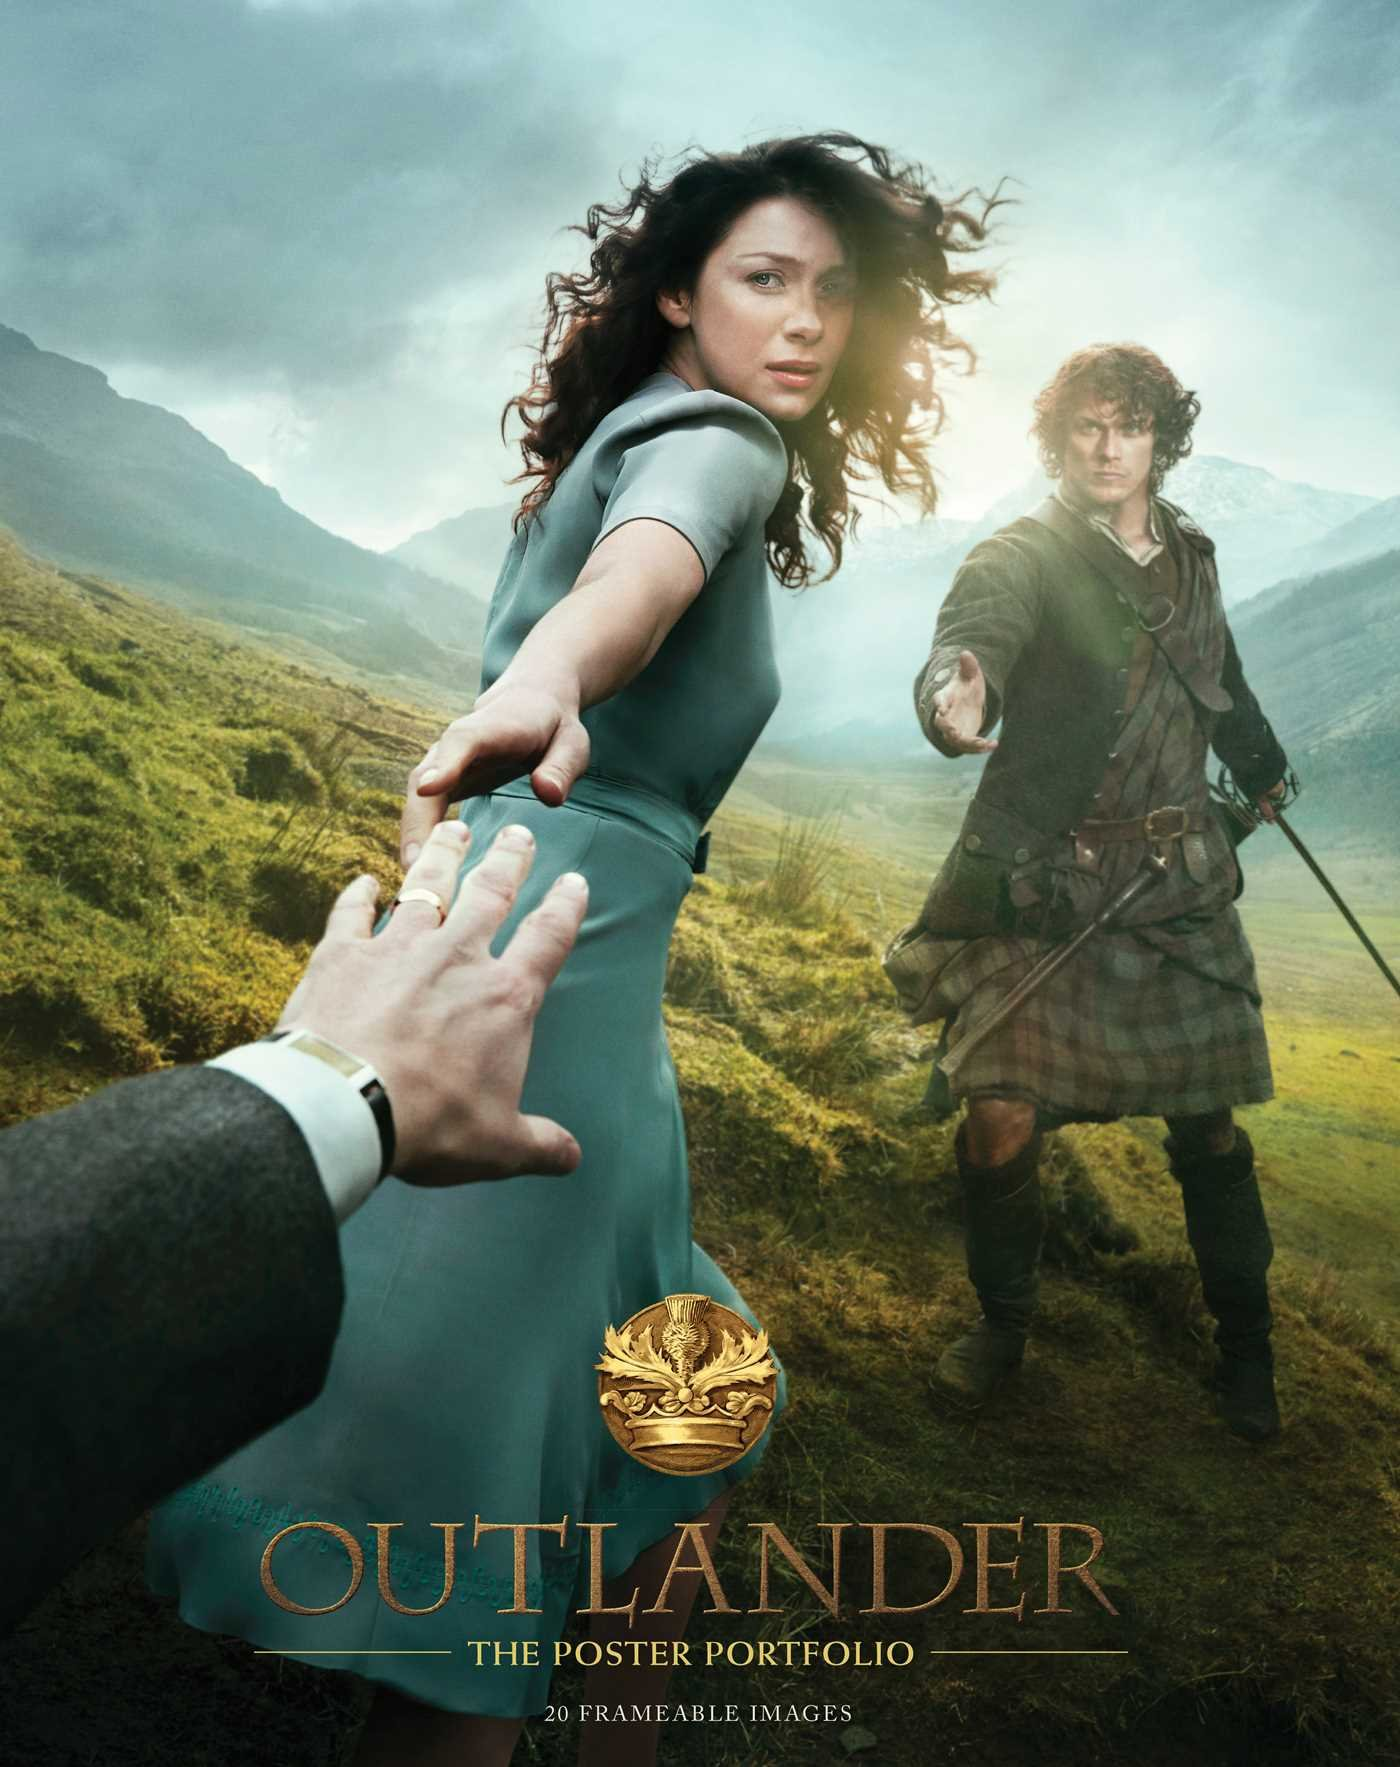 Outlander Poster Portfolio (Posters): Amazon.es: Insight Editions ...